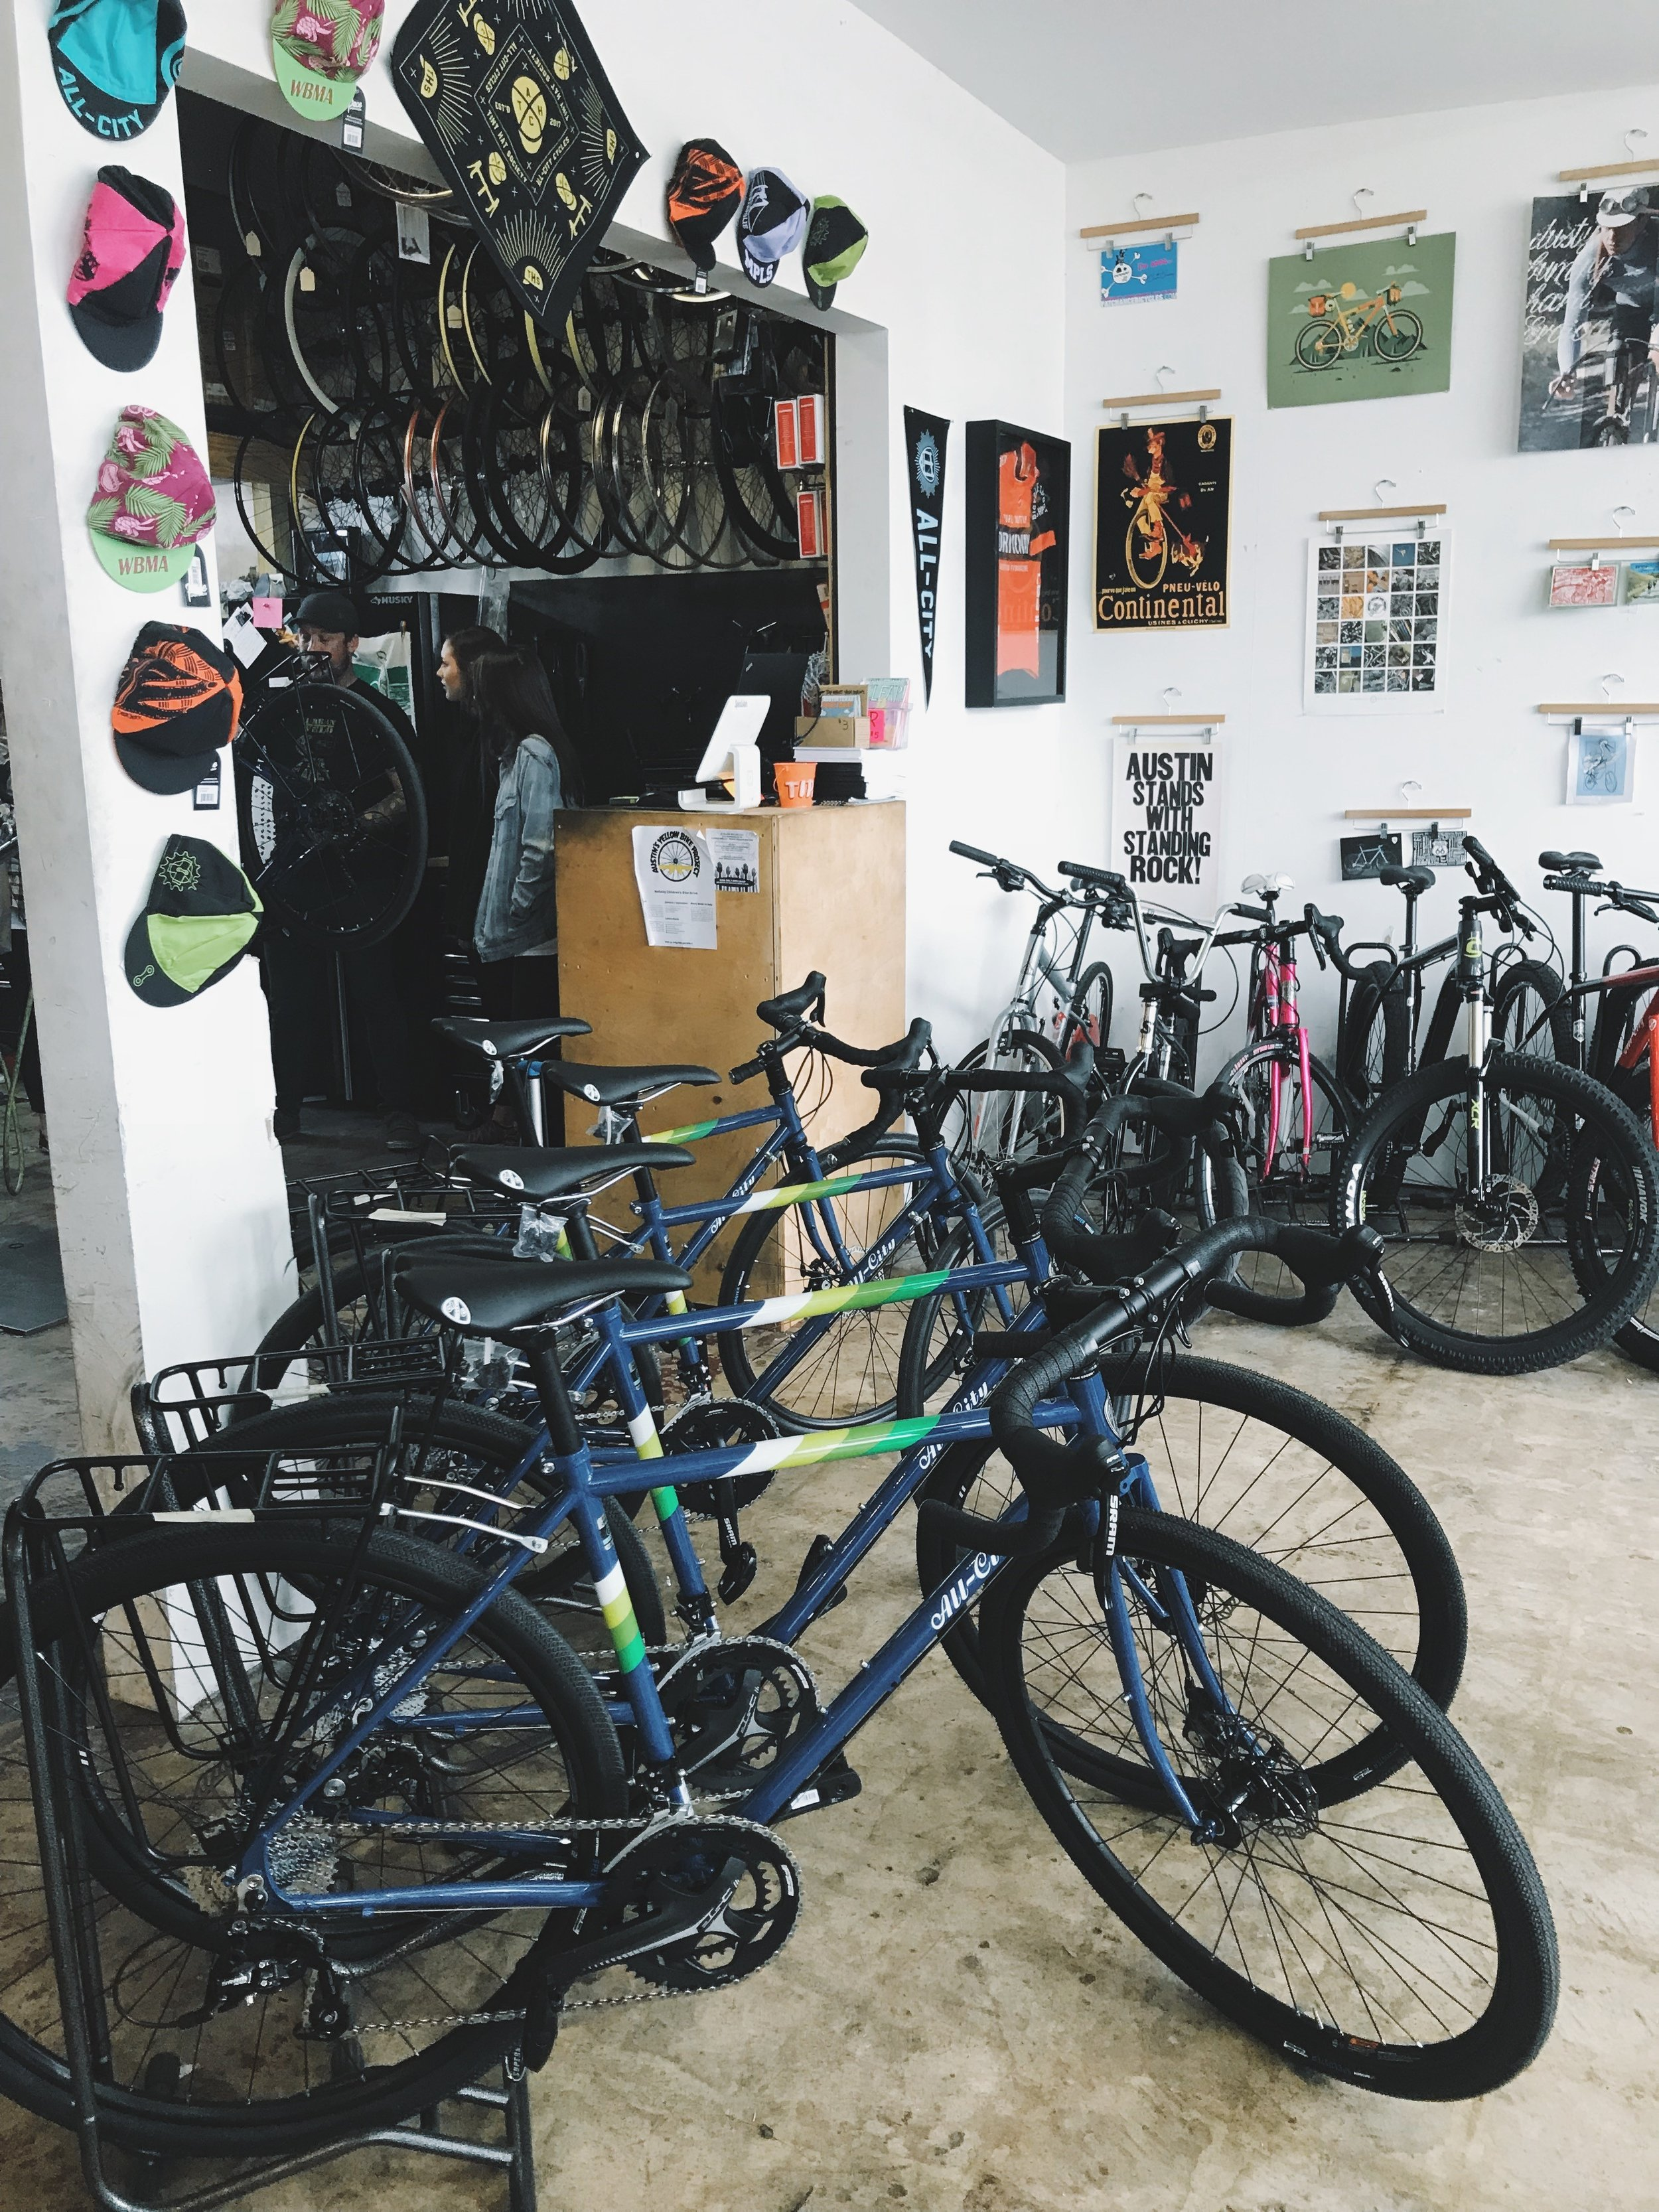 The beautiful team bikes:  All-City Cycles , Space Horse Disks